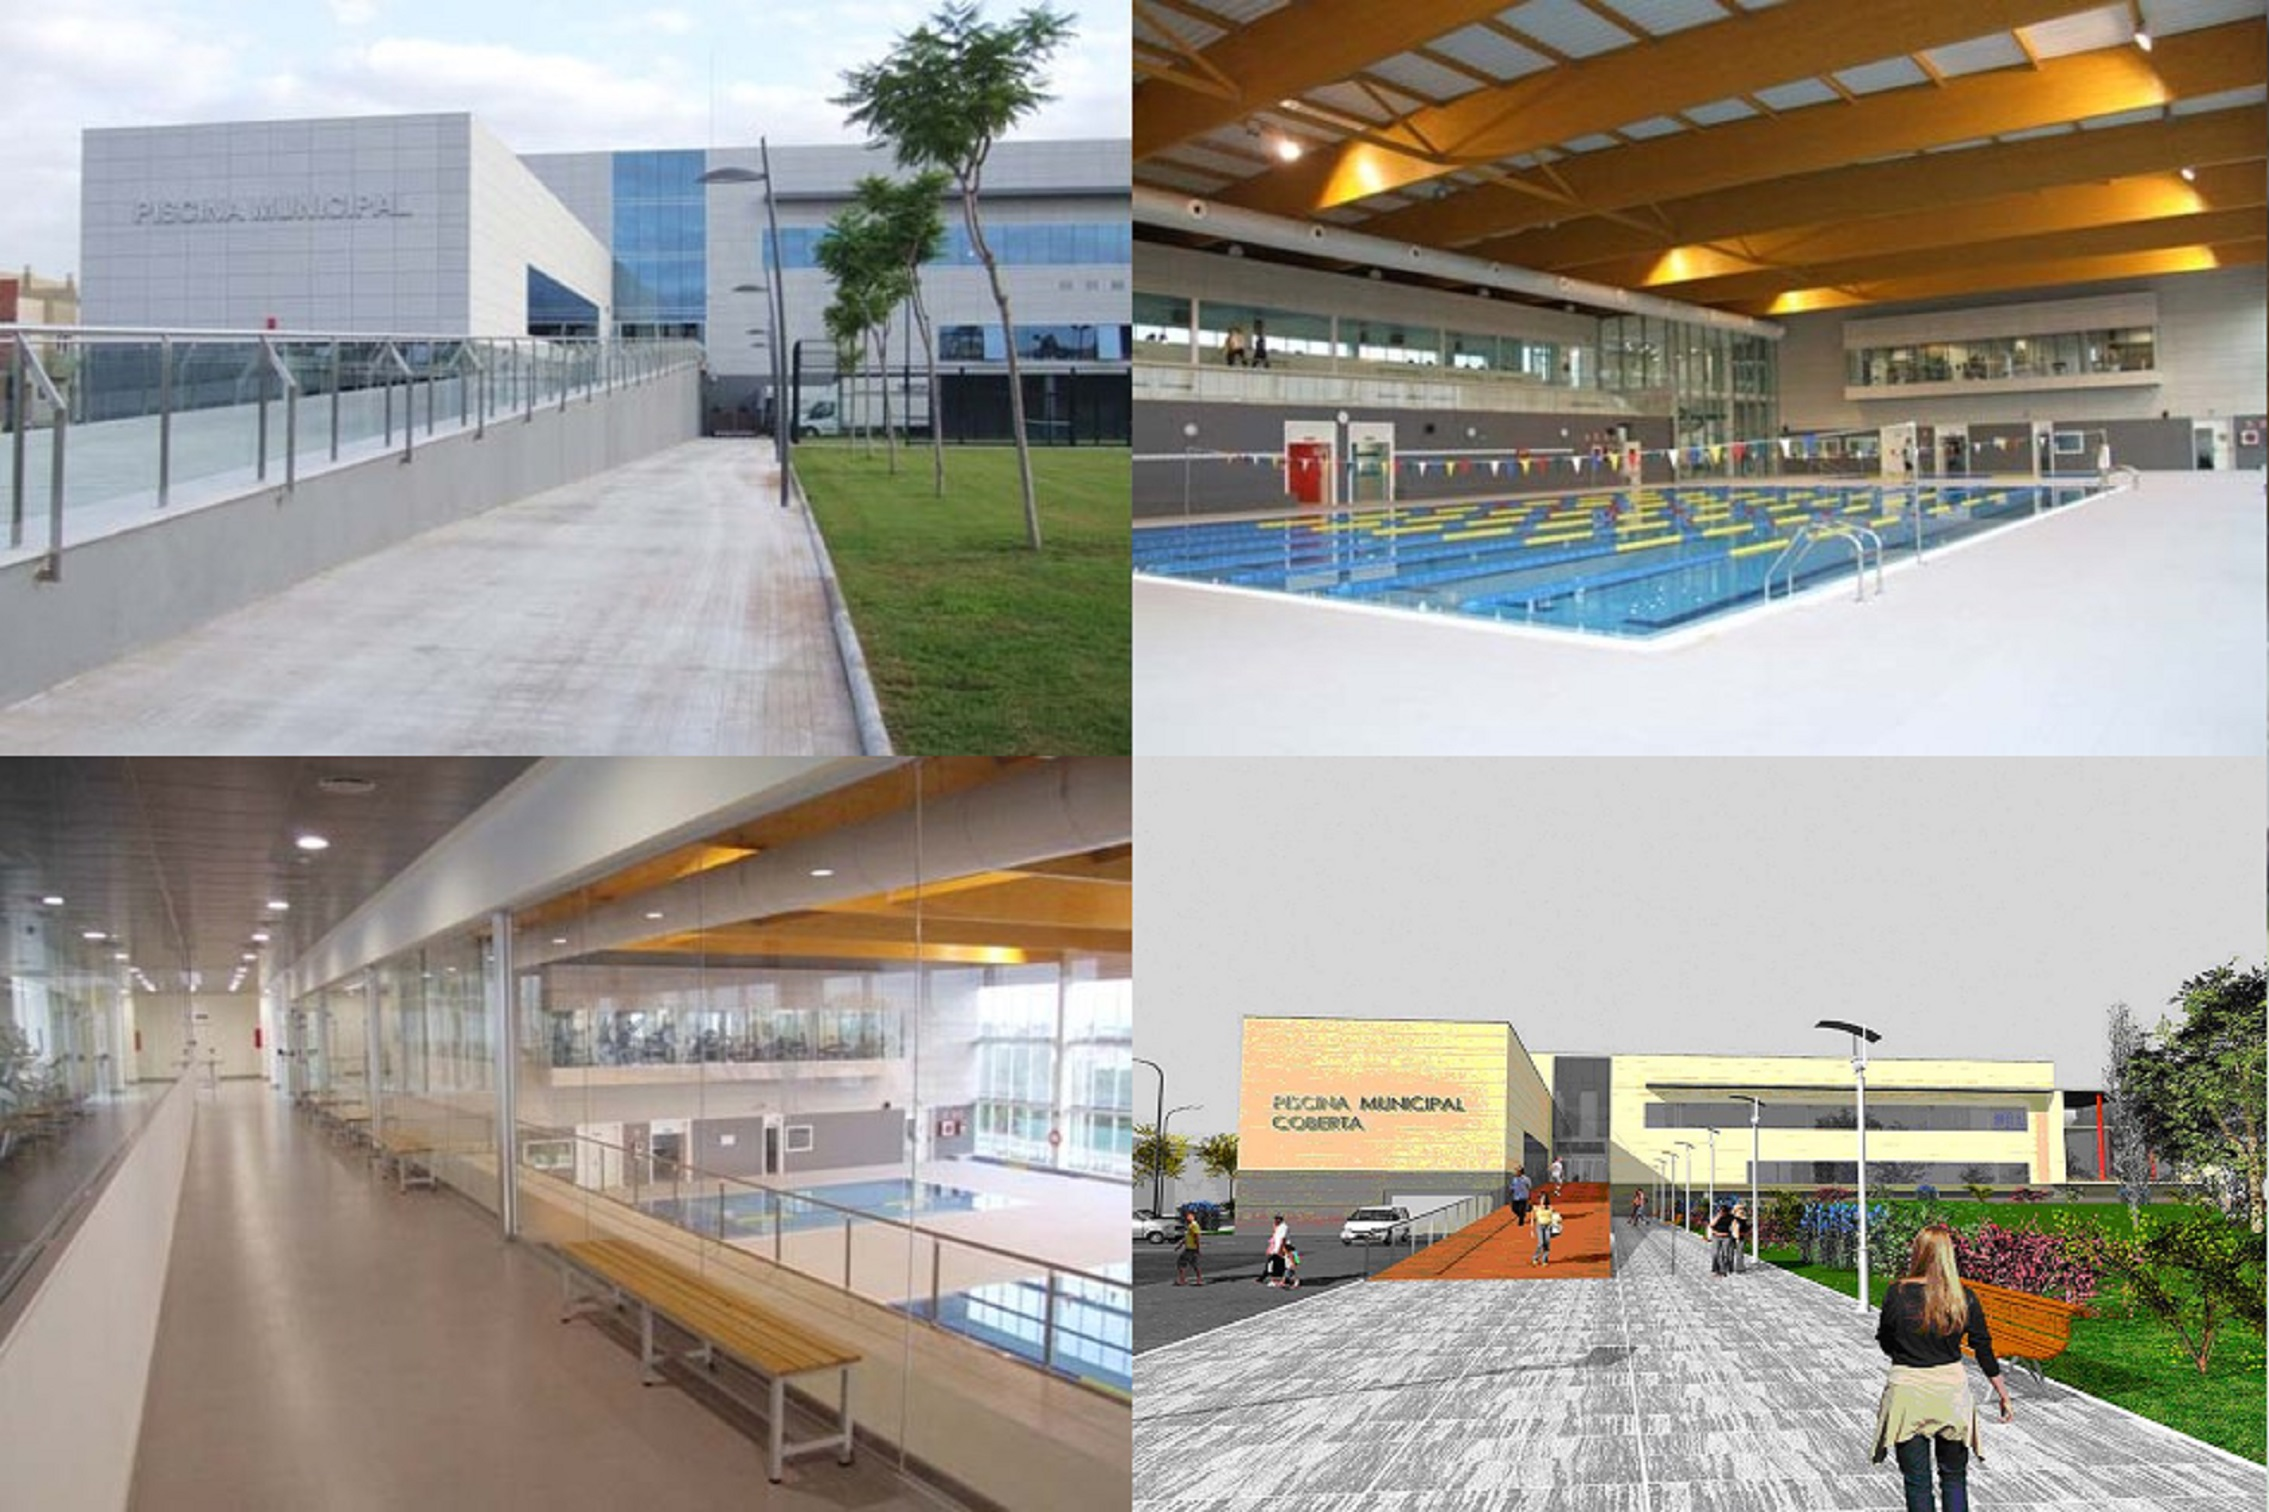 Atecsa ingenier a for Piscina municipal carcaixent